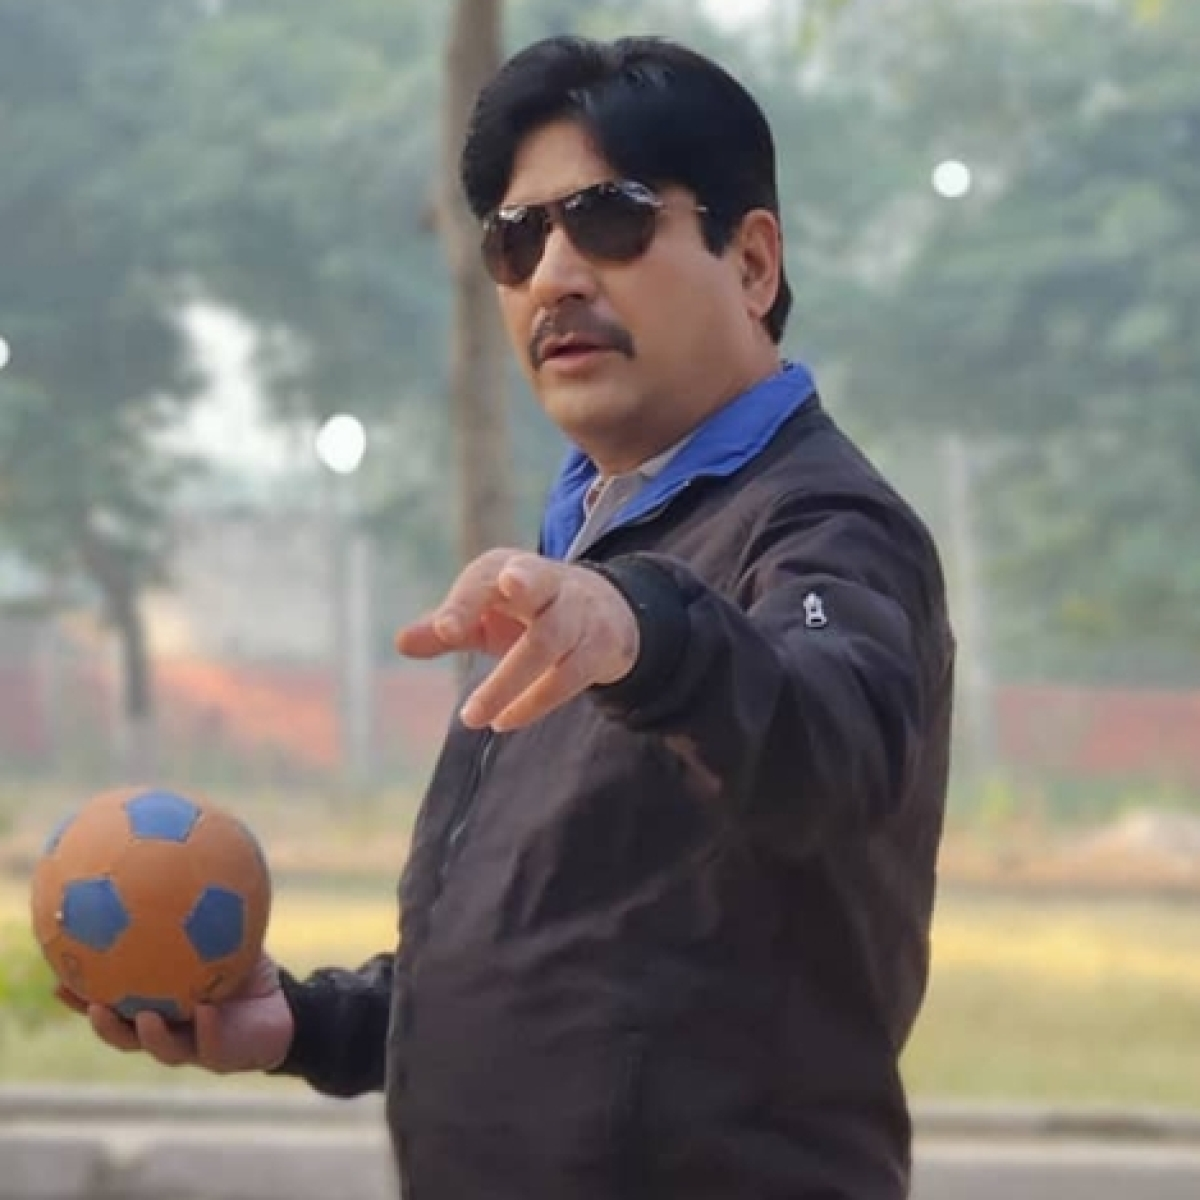 'An artist has no religion or caste': 'Lagaan' actor Yashpal Sharma with message of unity in divisive times